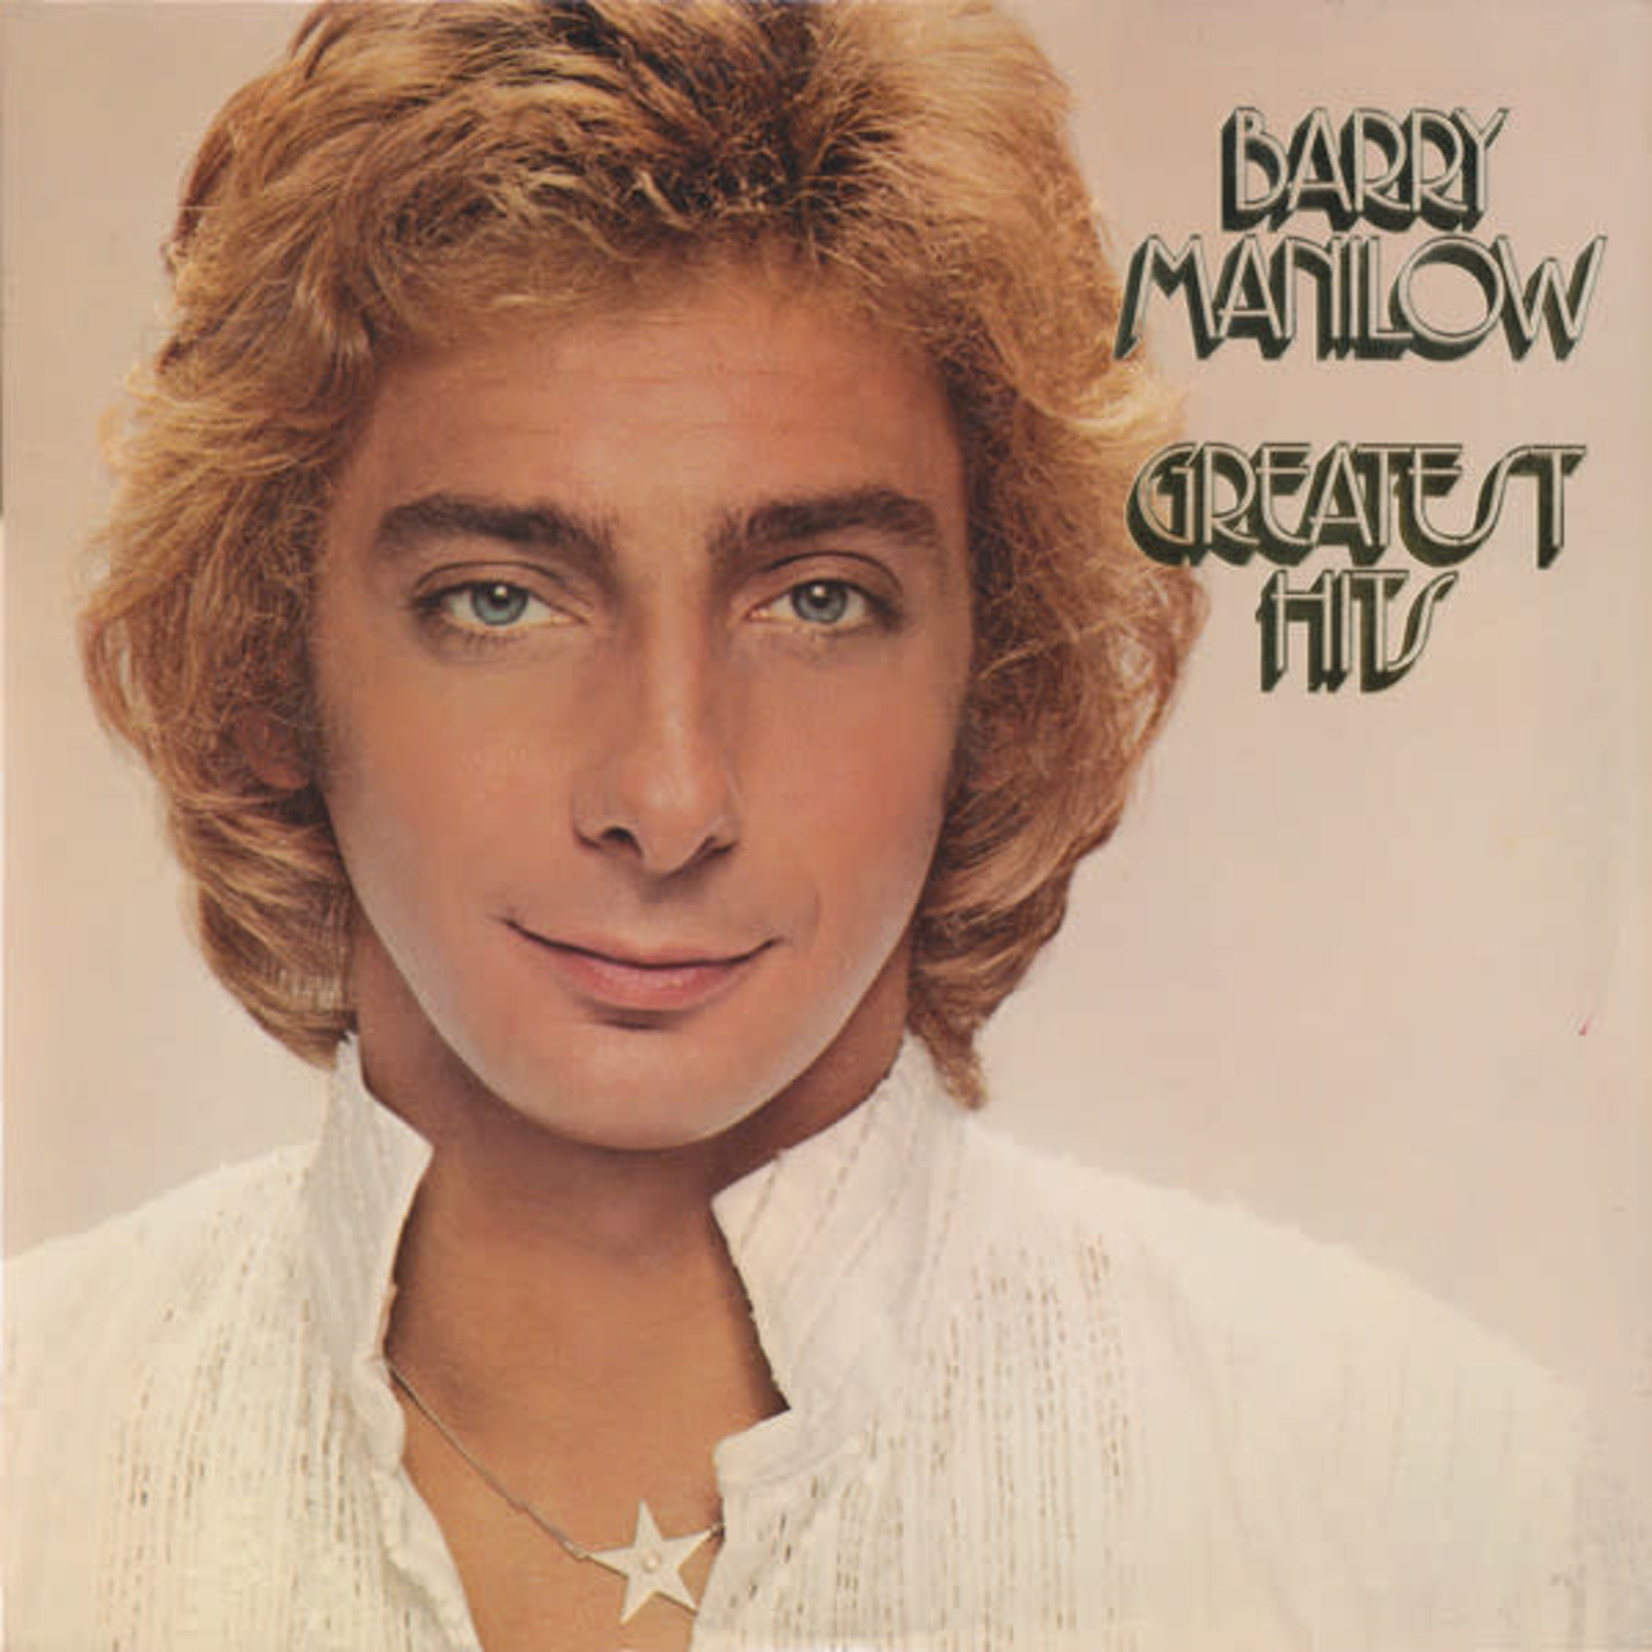 [Vintage] Manilow, Barry: Greatest Hits (2LP)